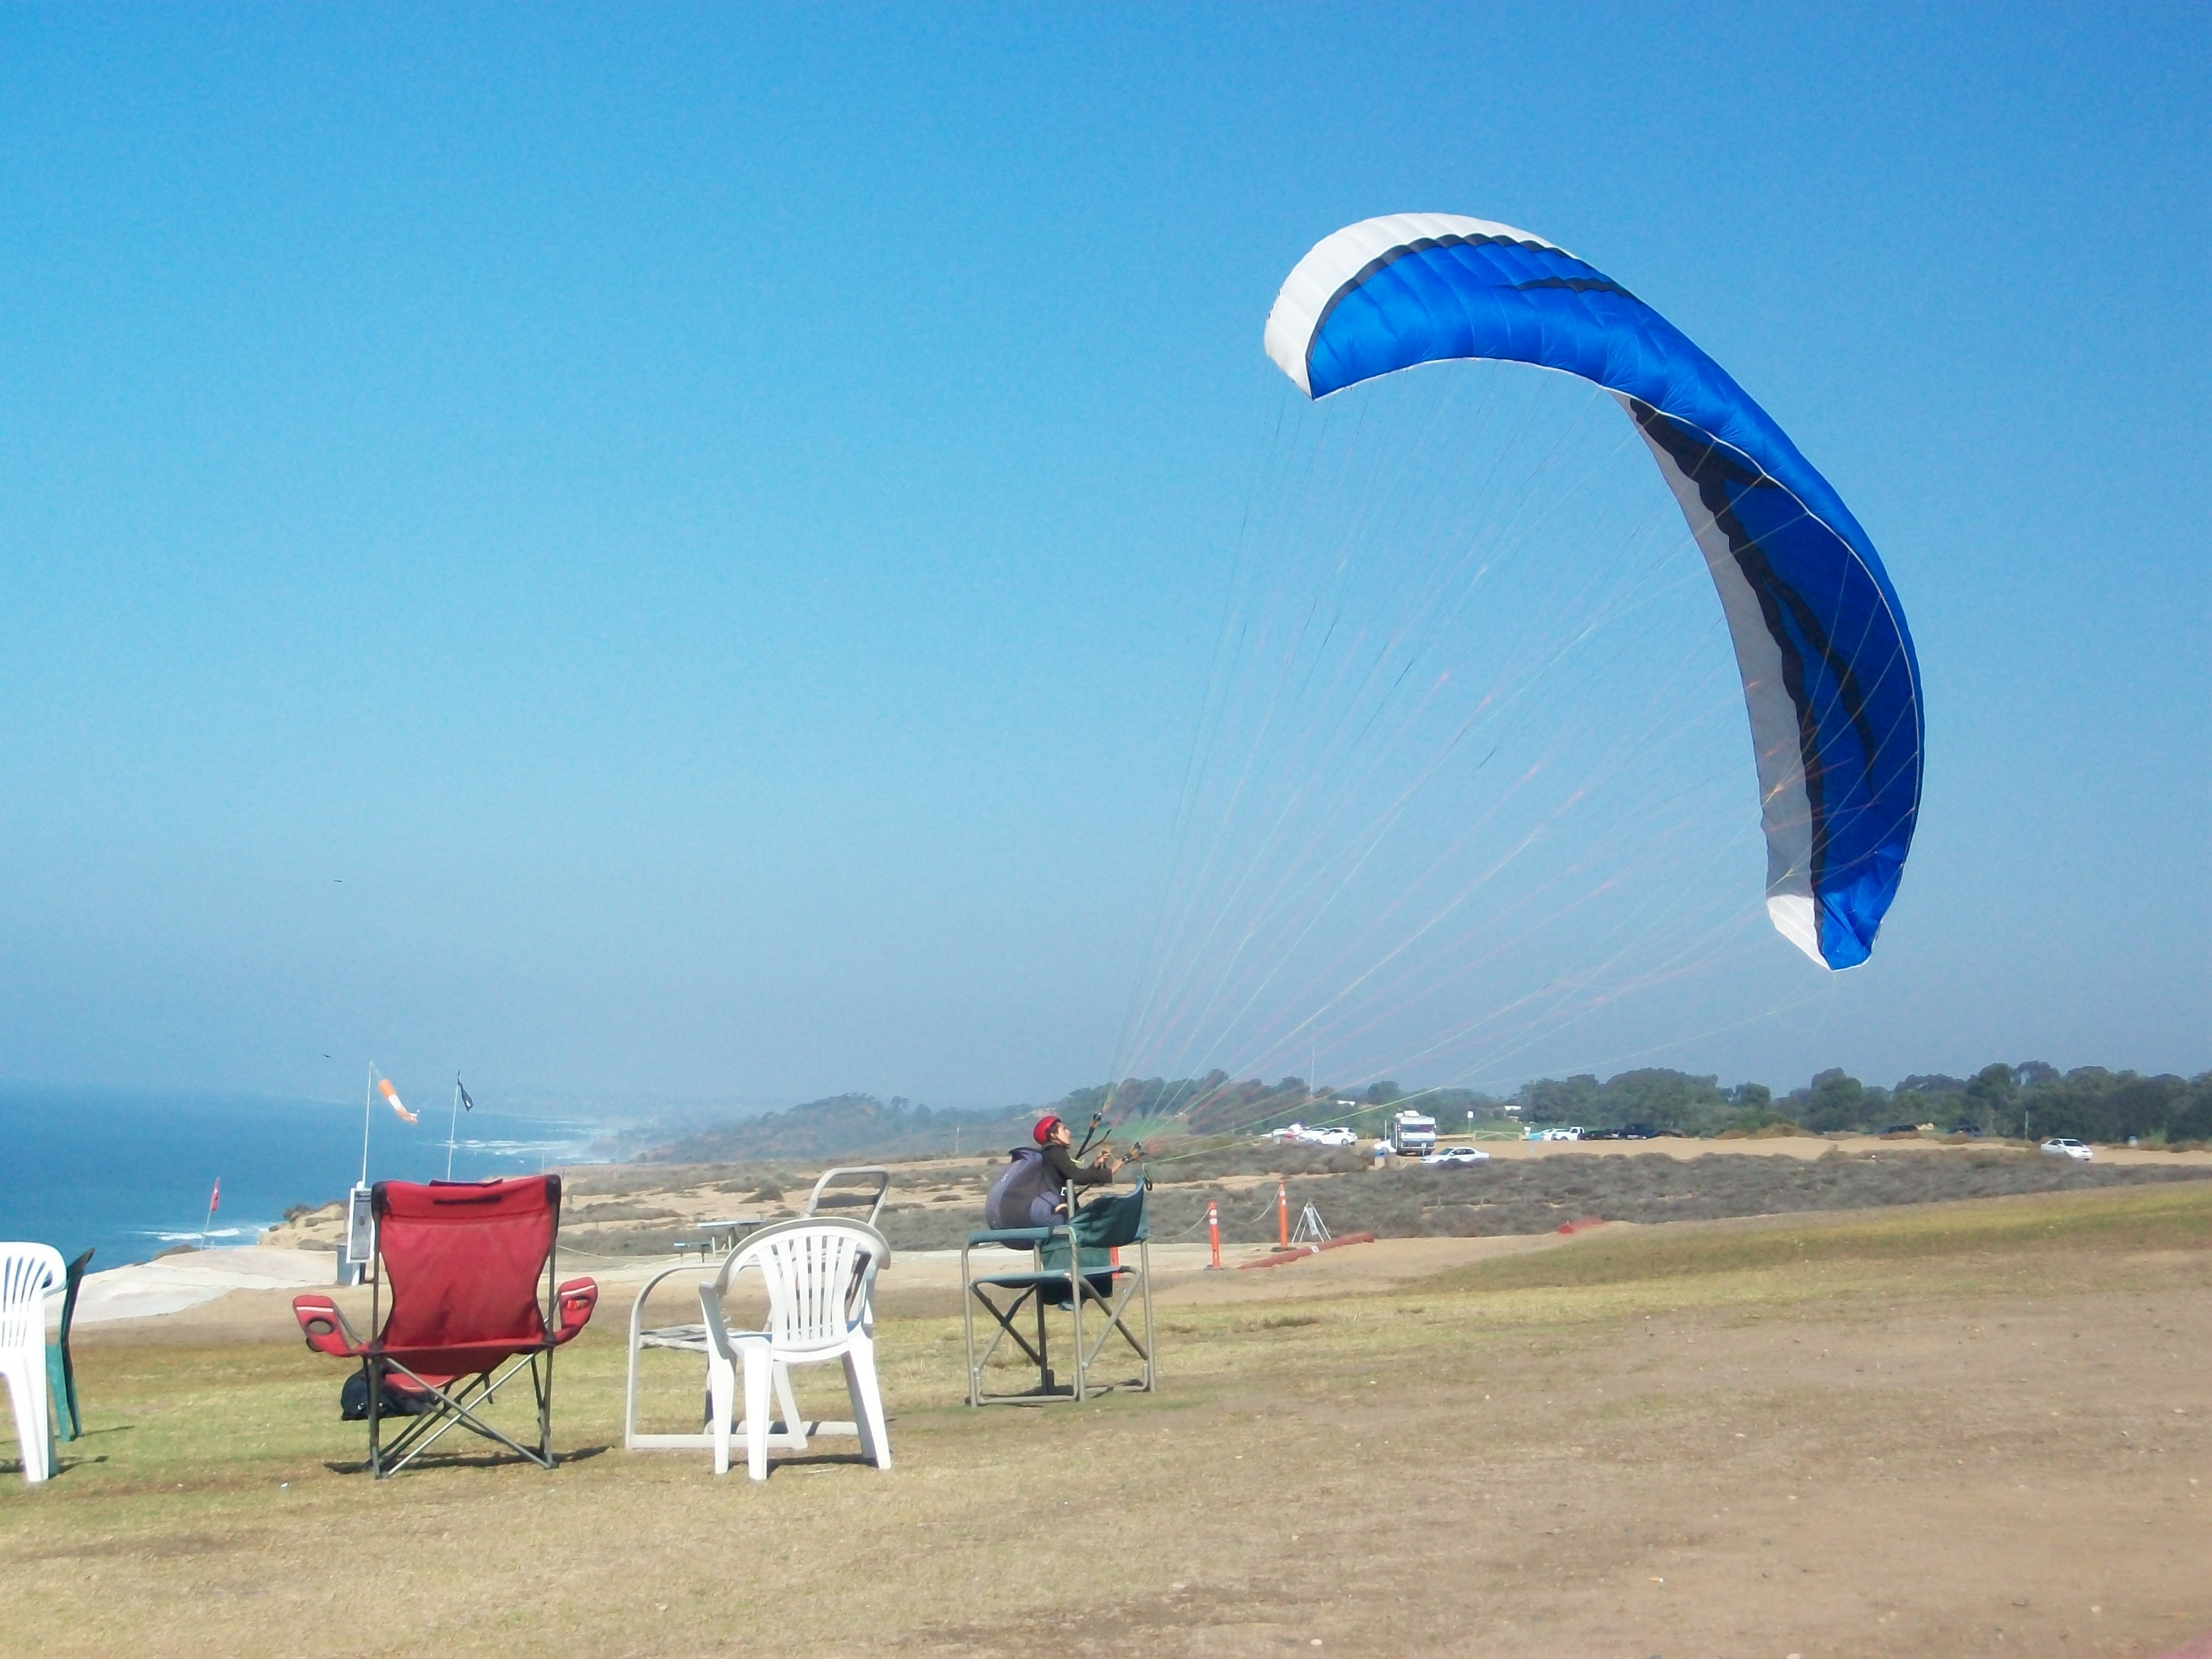 Sports in Torrey Pines Gliderport